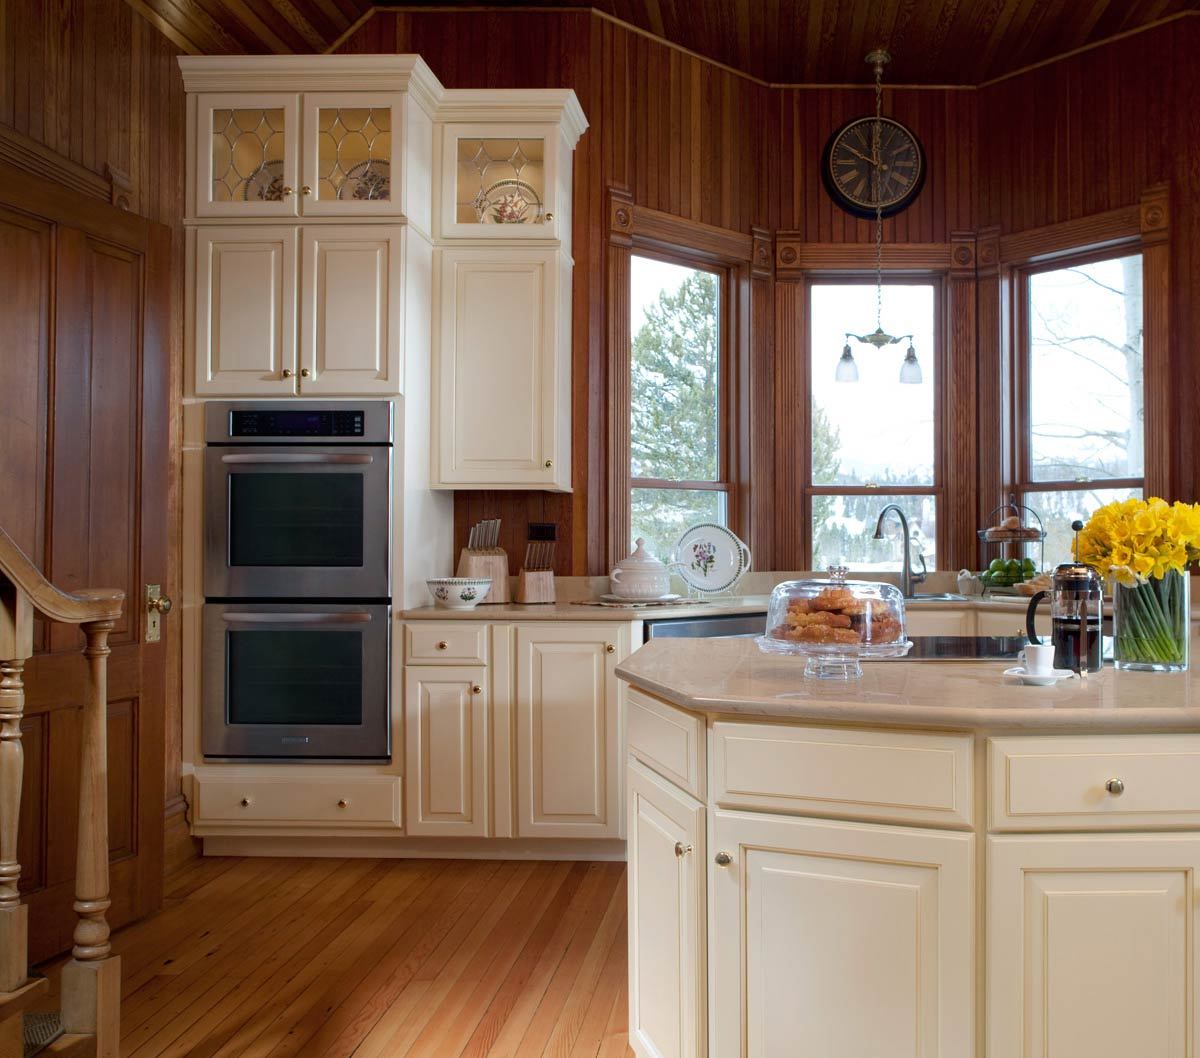 popular design ideas maryland kitchen cabinets discount style in 610d painted butterscotch glaze kitchen